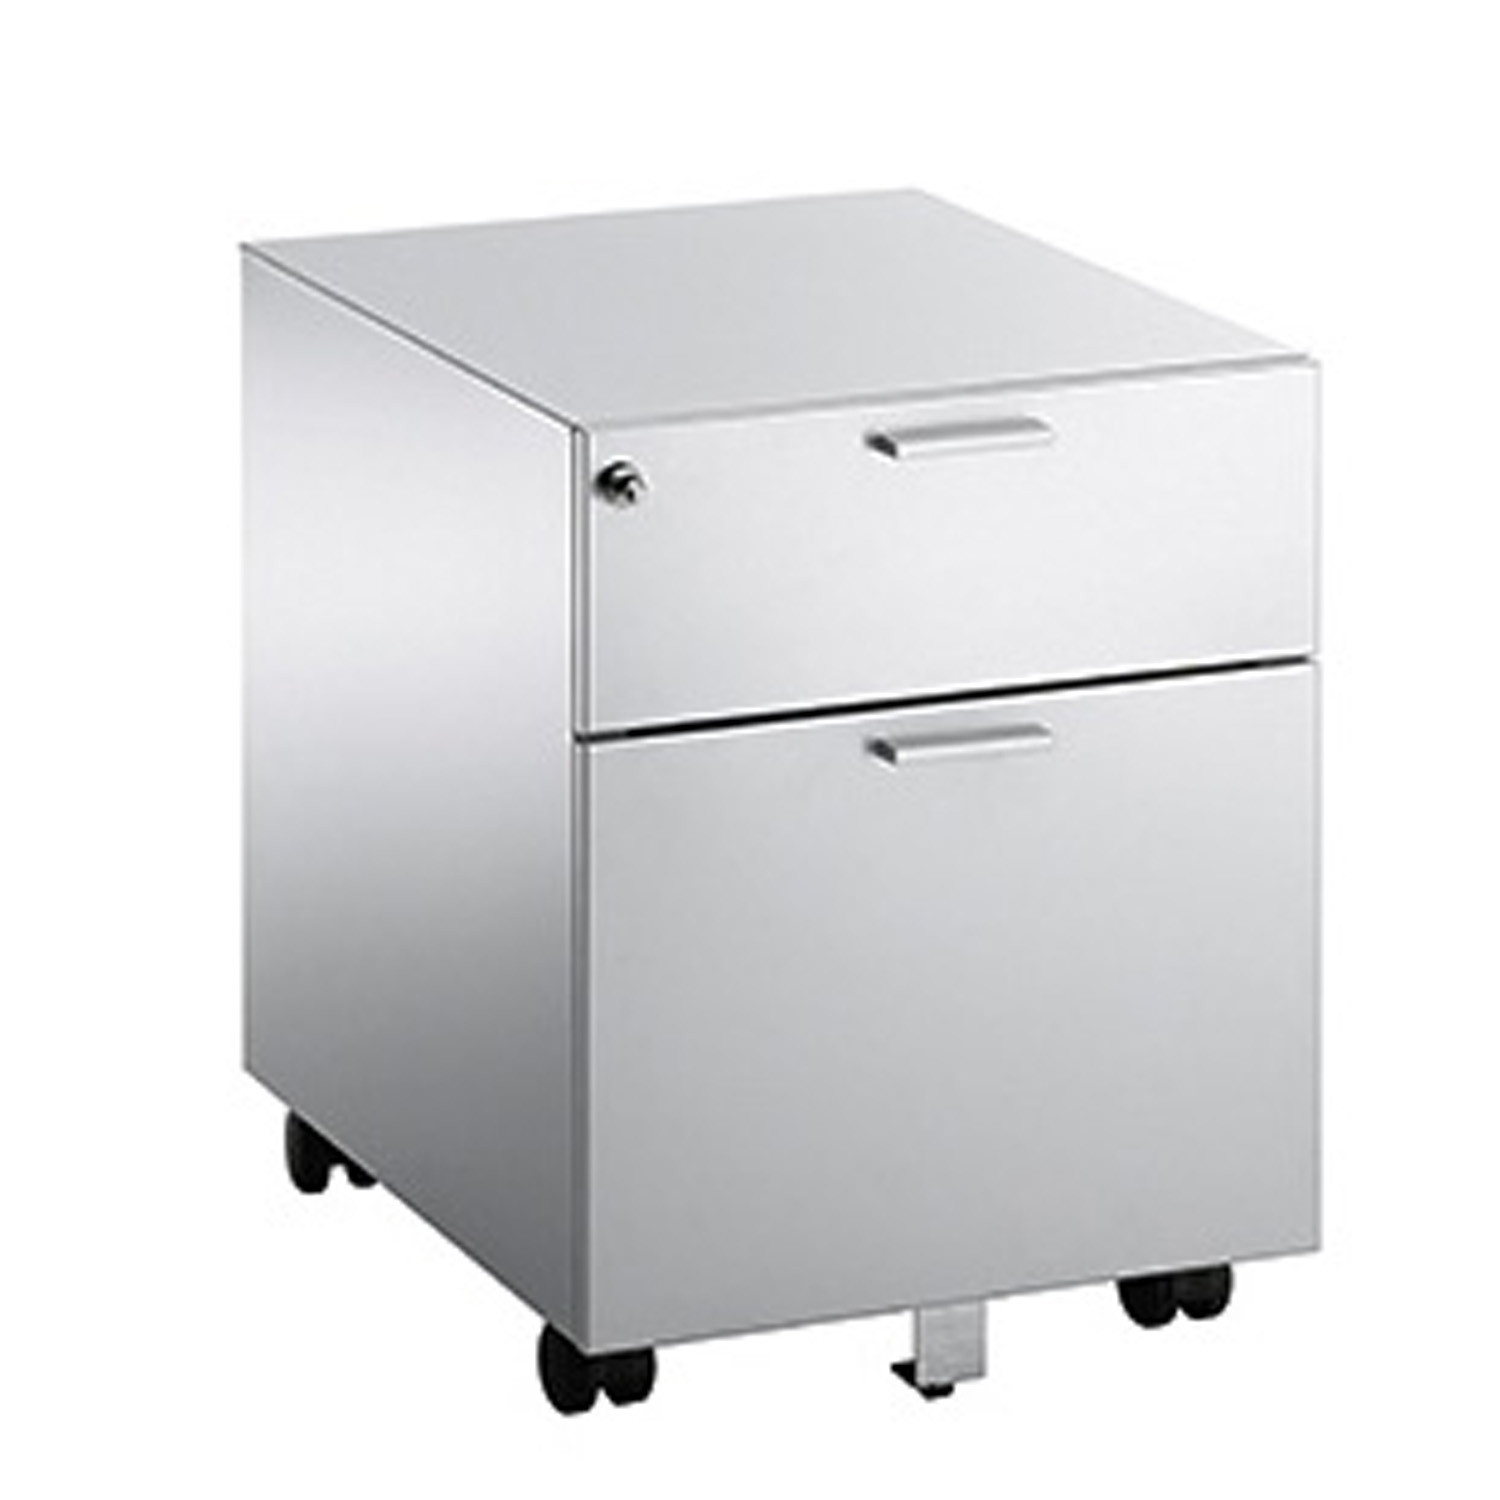 Flex 1 box dawer + 1 file drawer pedestal